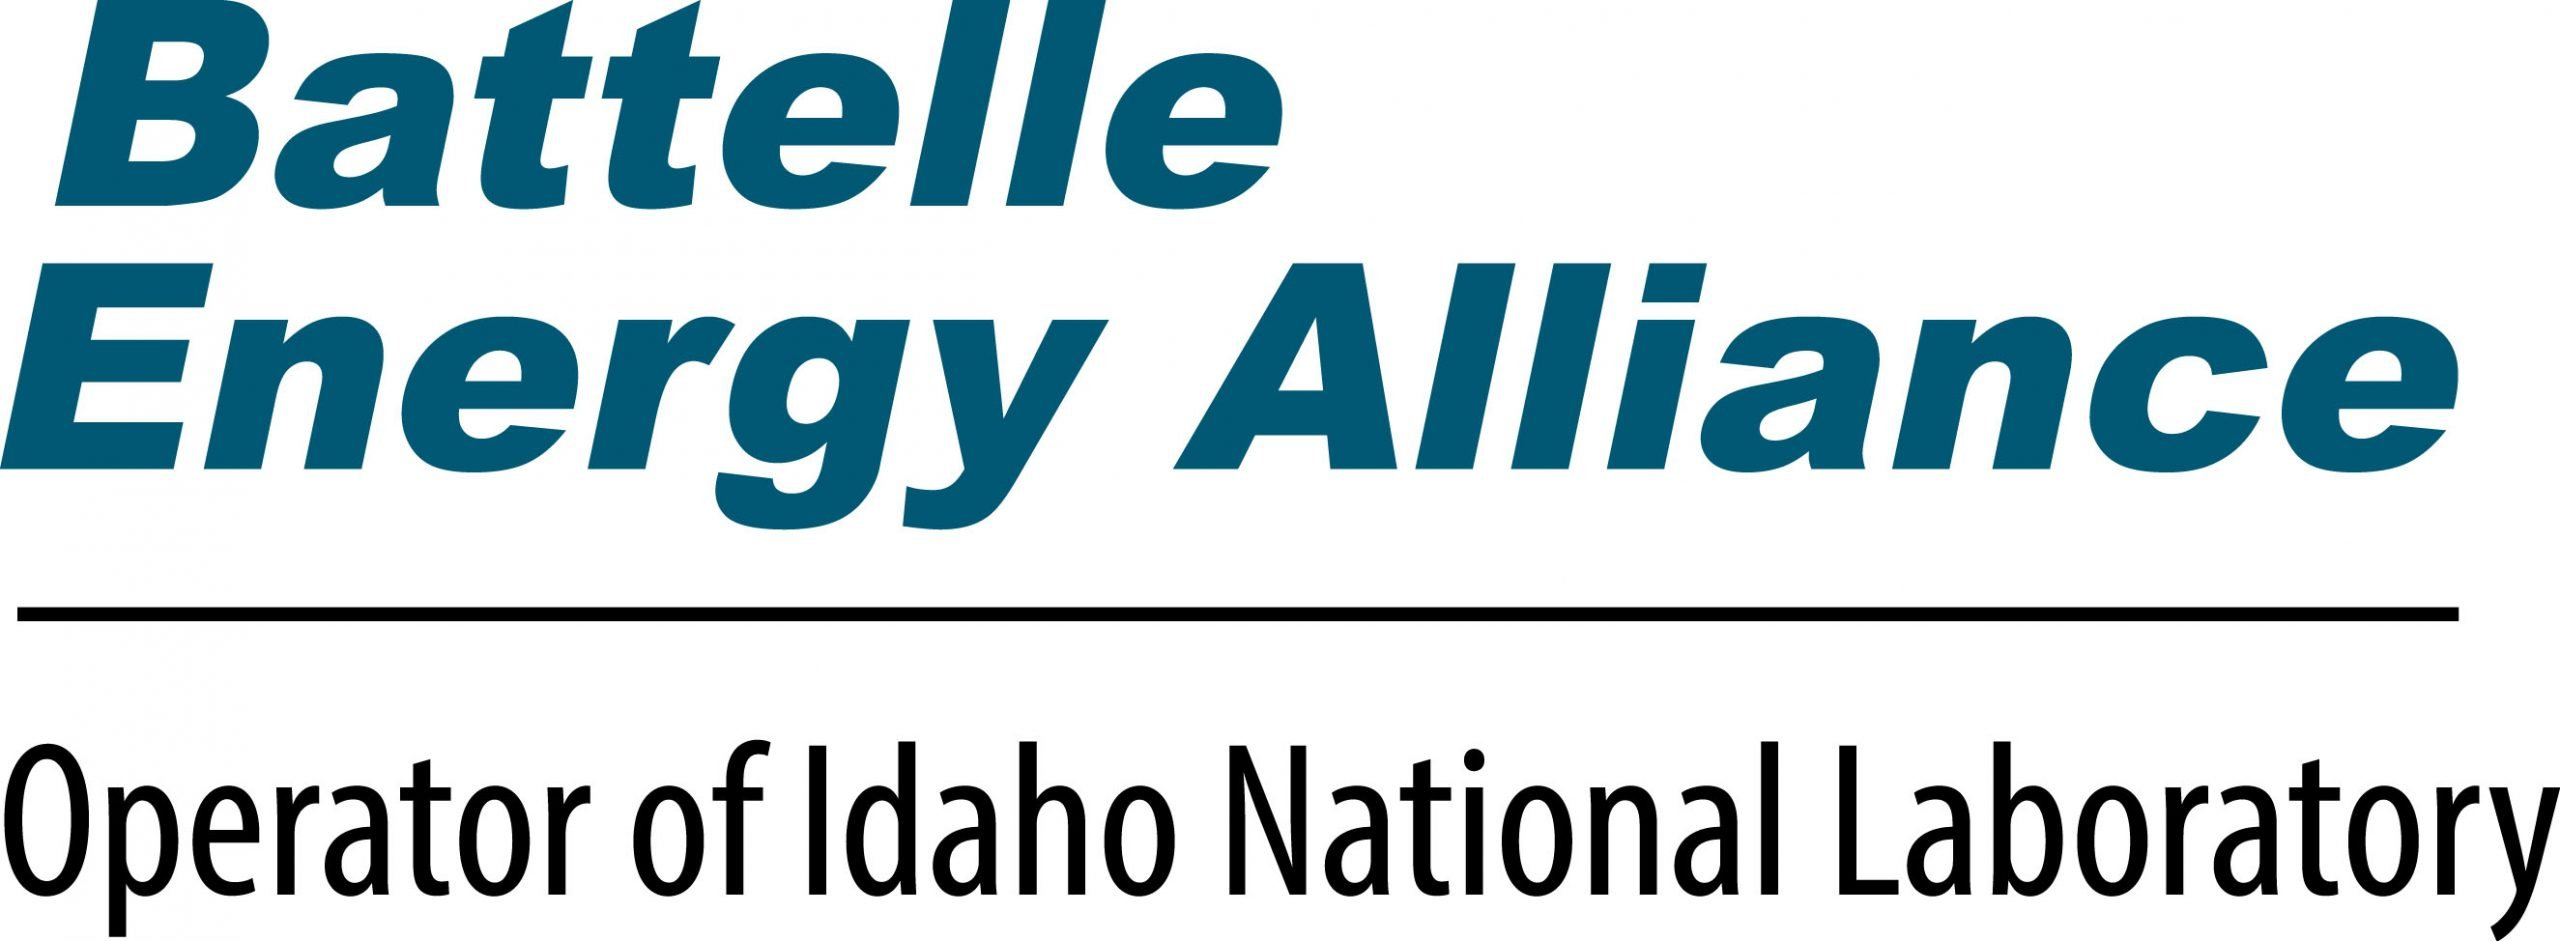 Battelle Energy Alliance – Idaho National Laboratory